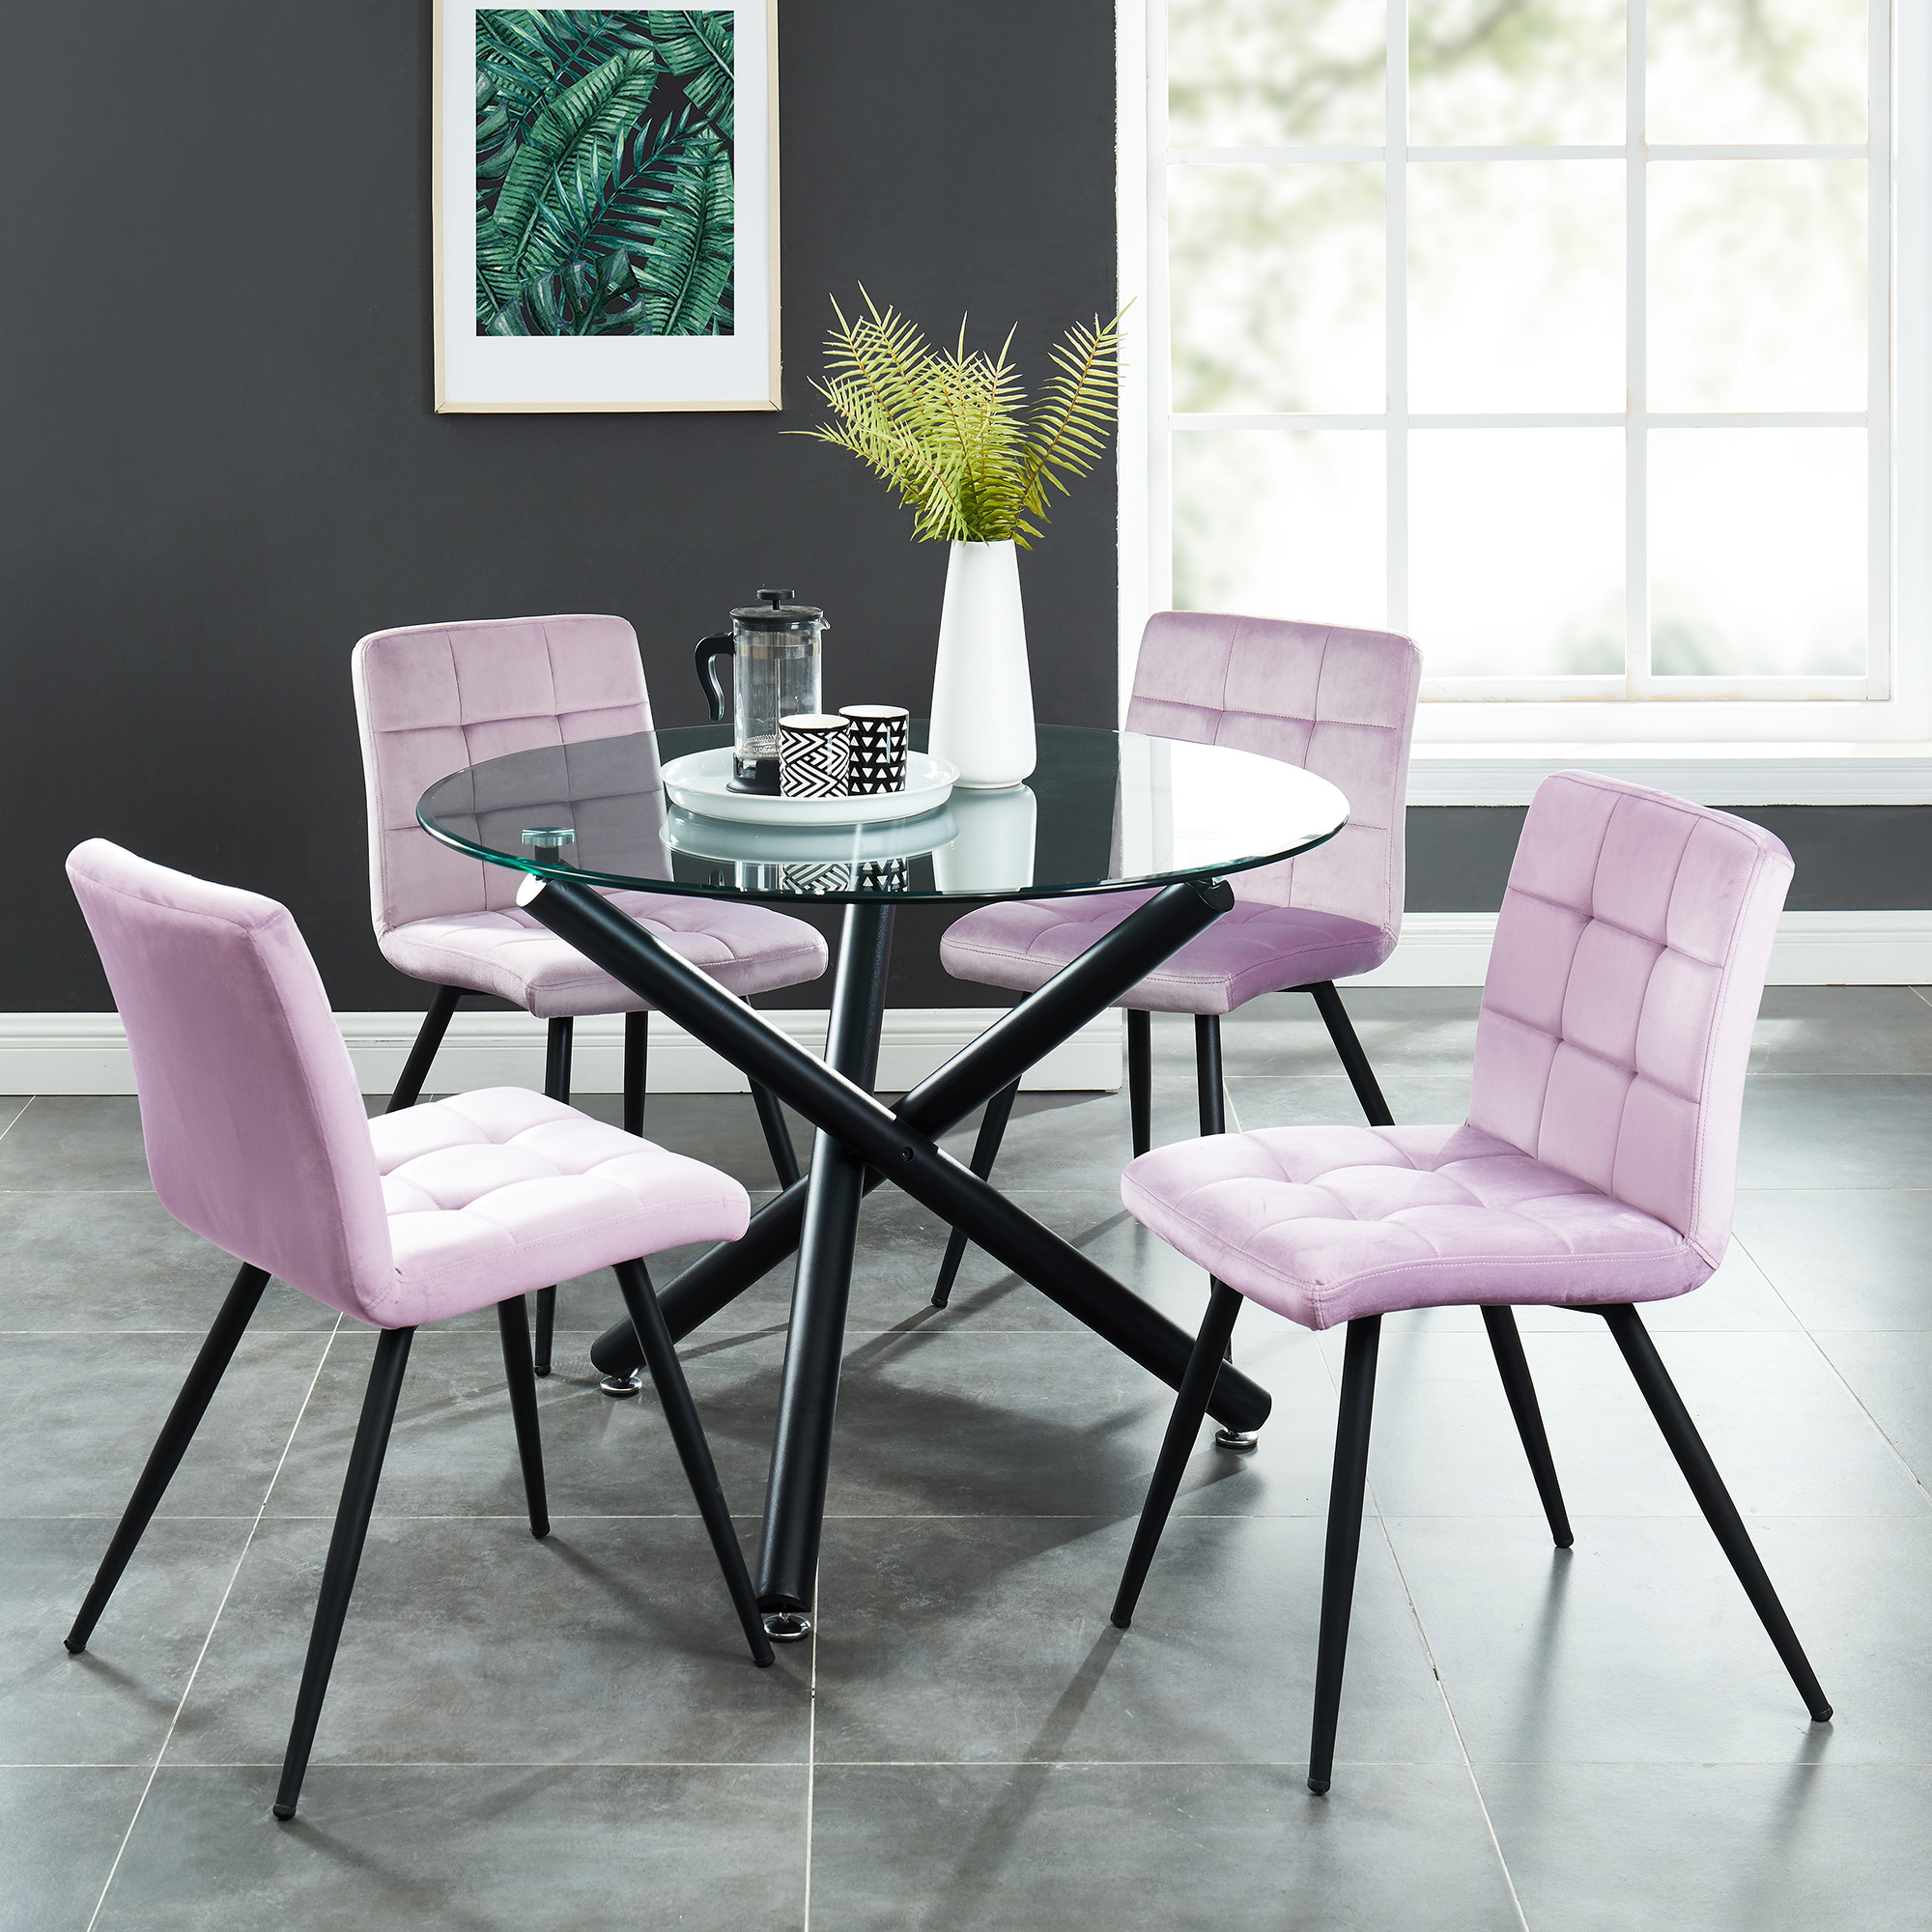 Suzette Rose 5 Pc Dining Set Package Splendid Furnishings